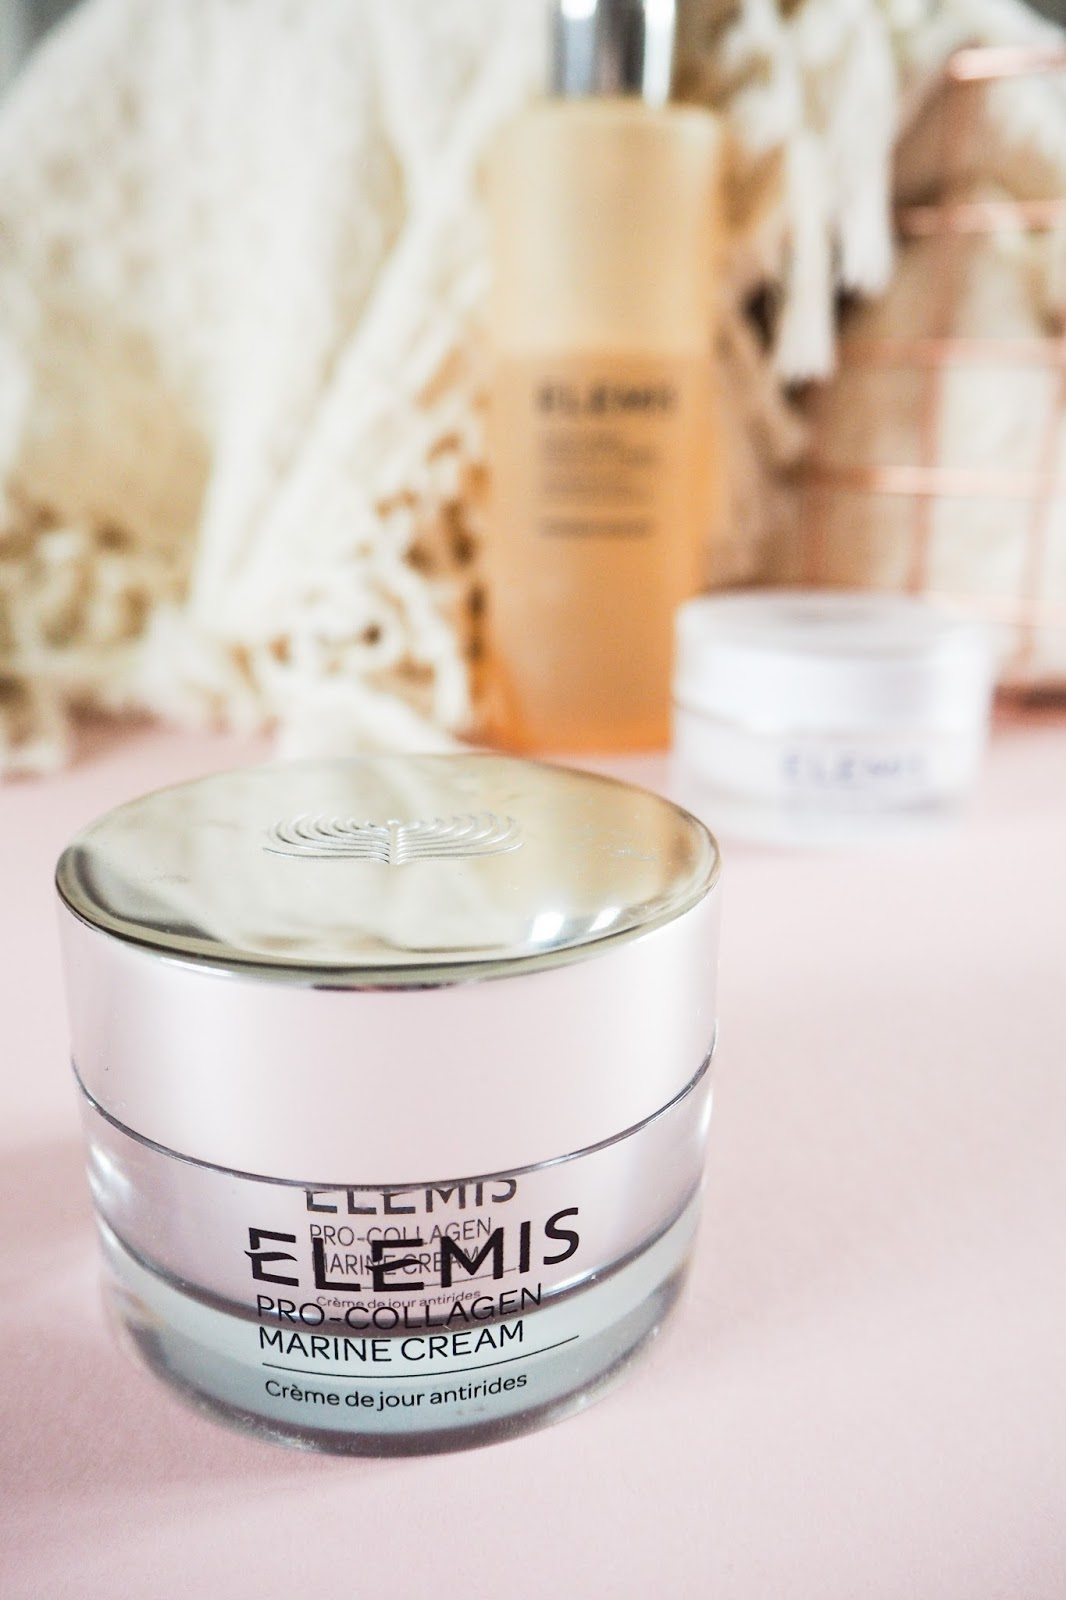 Elemis Pro-Collagen Marine Cream Review